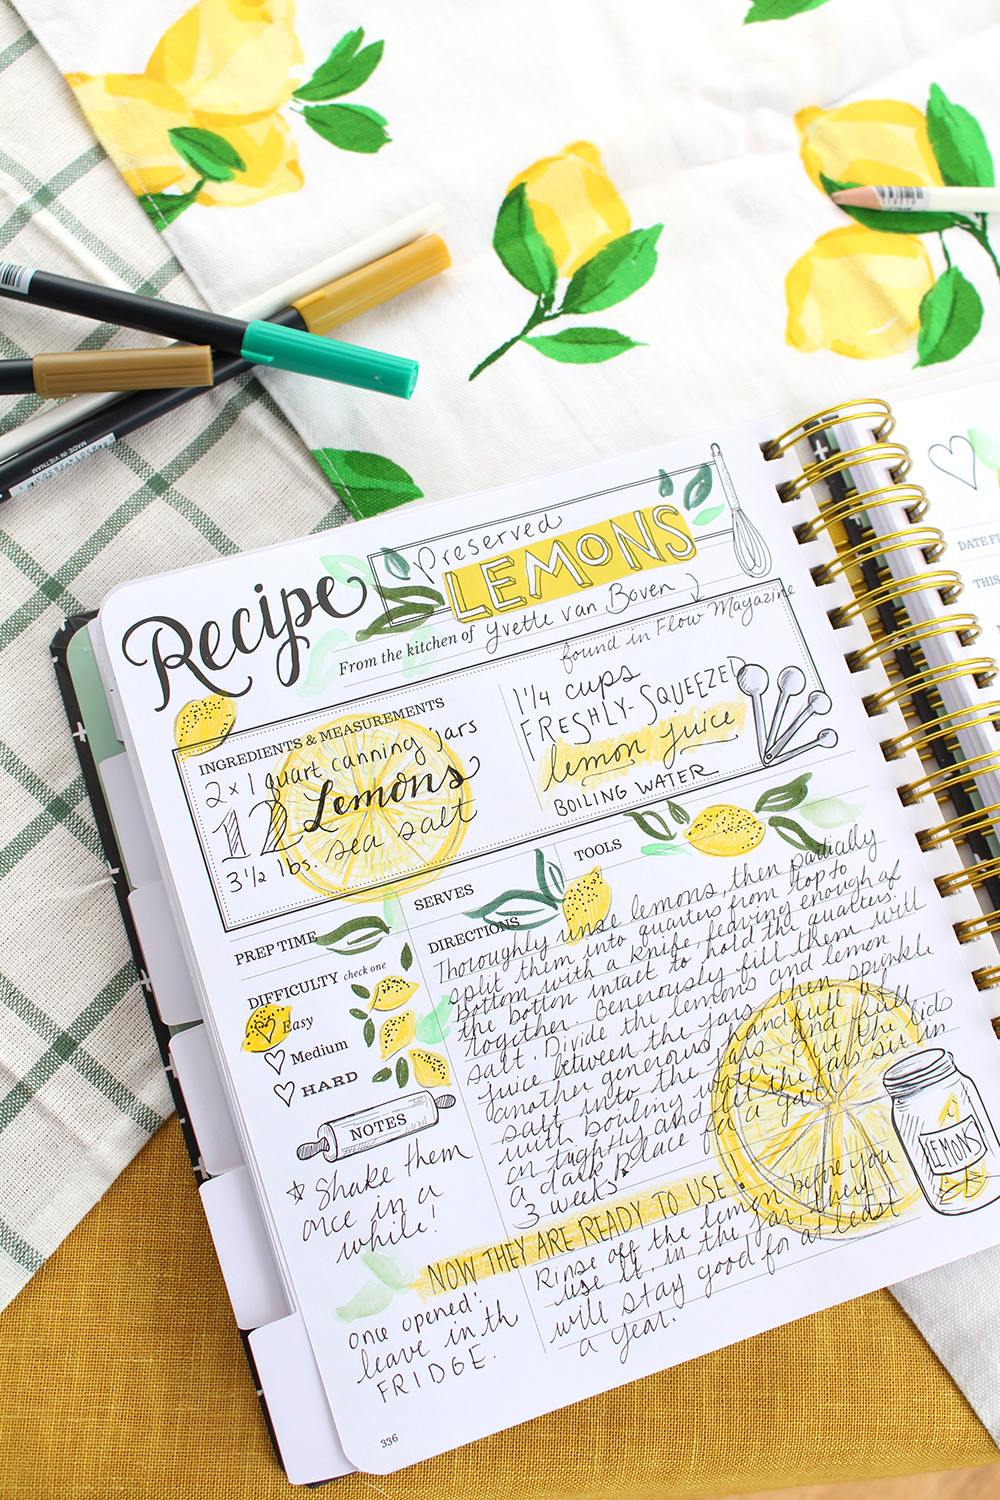 AKeepsake Kitchen Diary recipe spread by Valerie McKeehan - preserved lemons. The Kitchen Diary is a DIY cookbook with room to write memories.